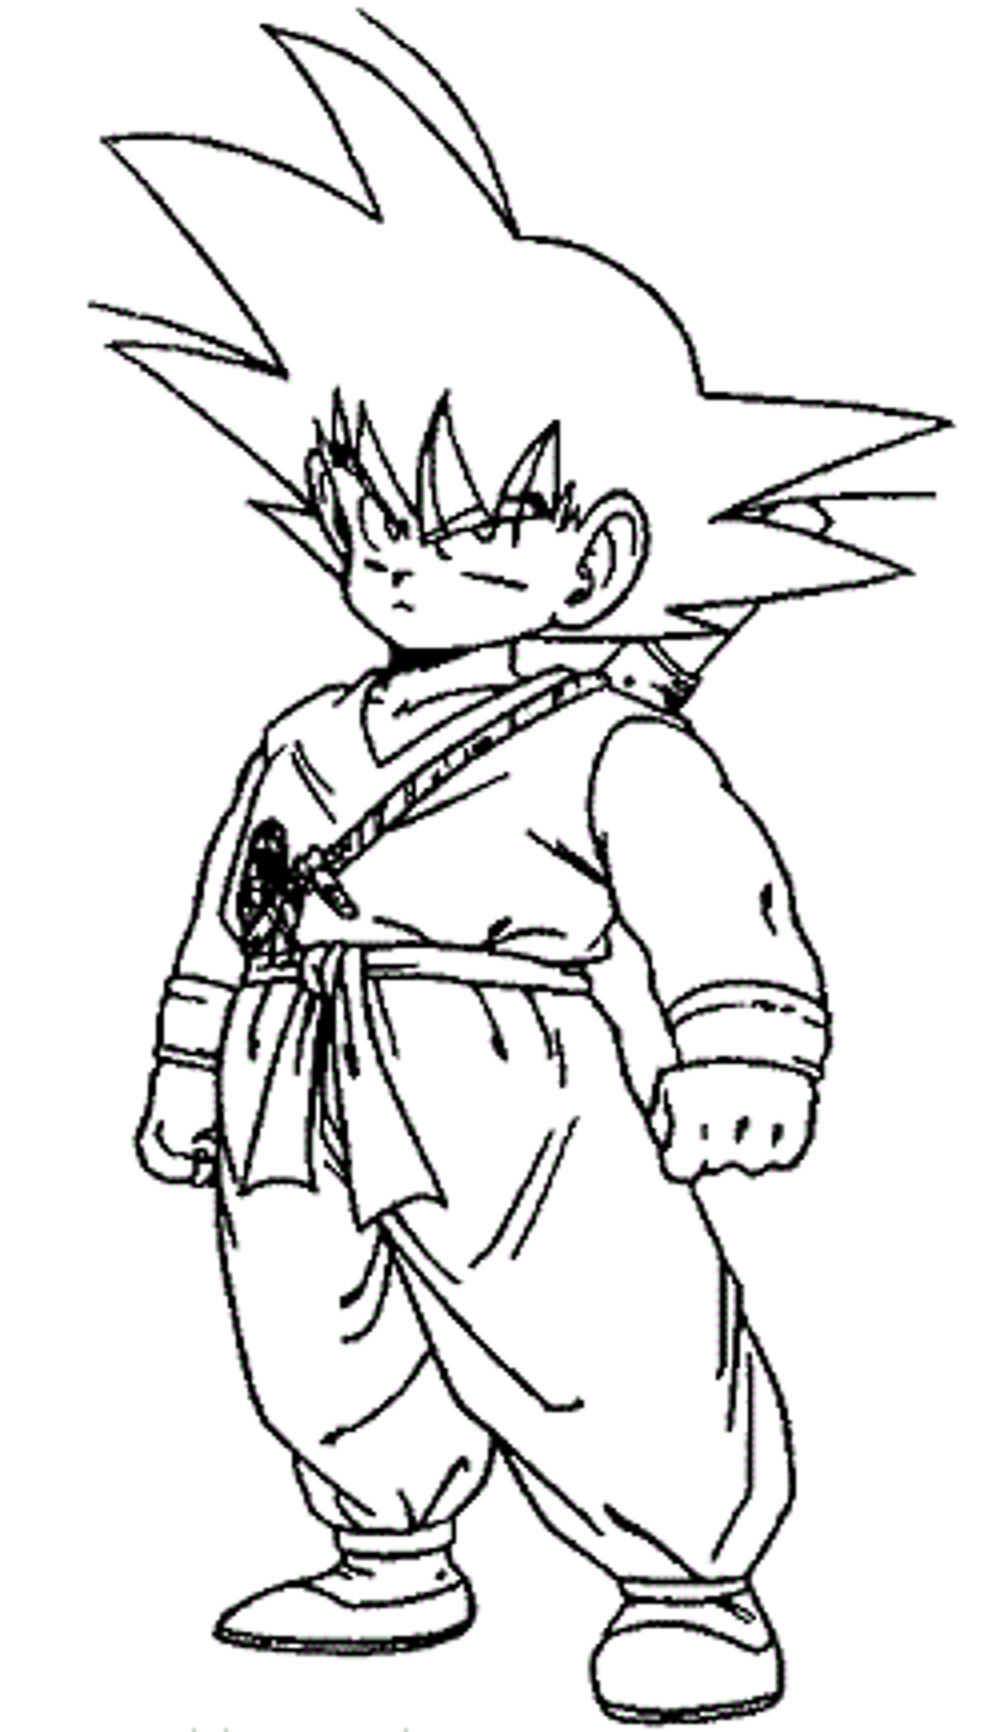 Dragon ball z coloring pages little goku for Dbz coloring pages goku